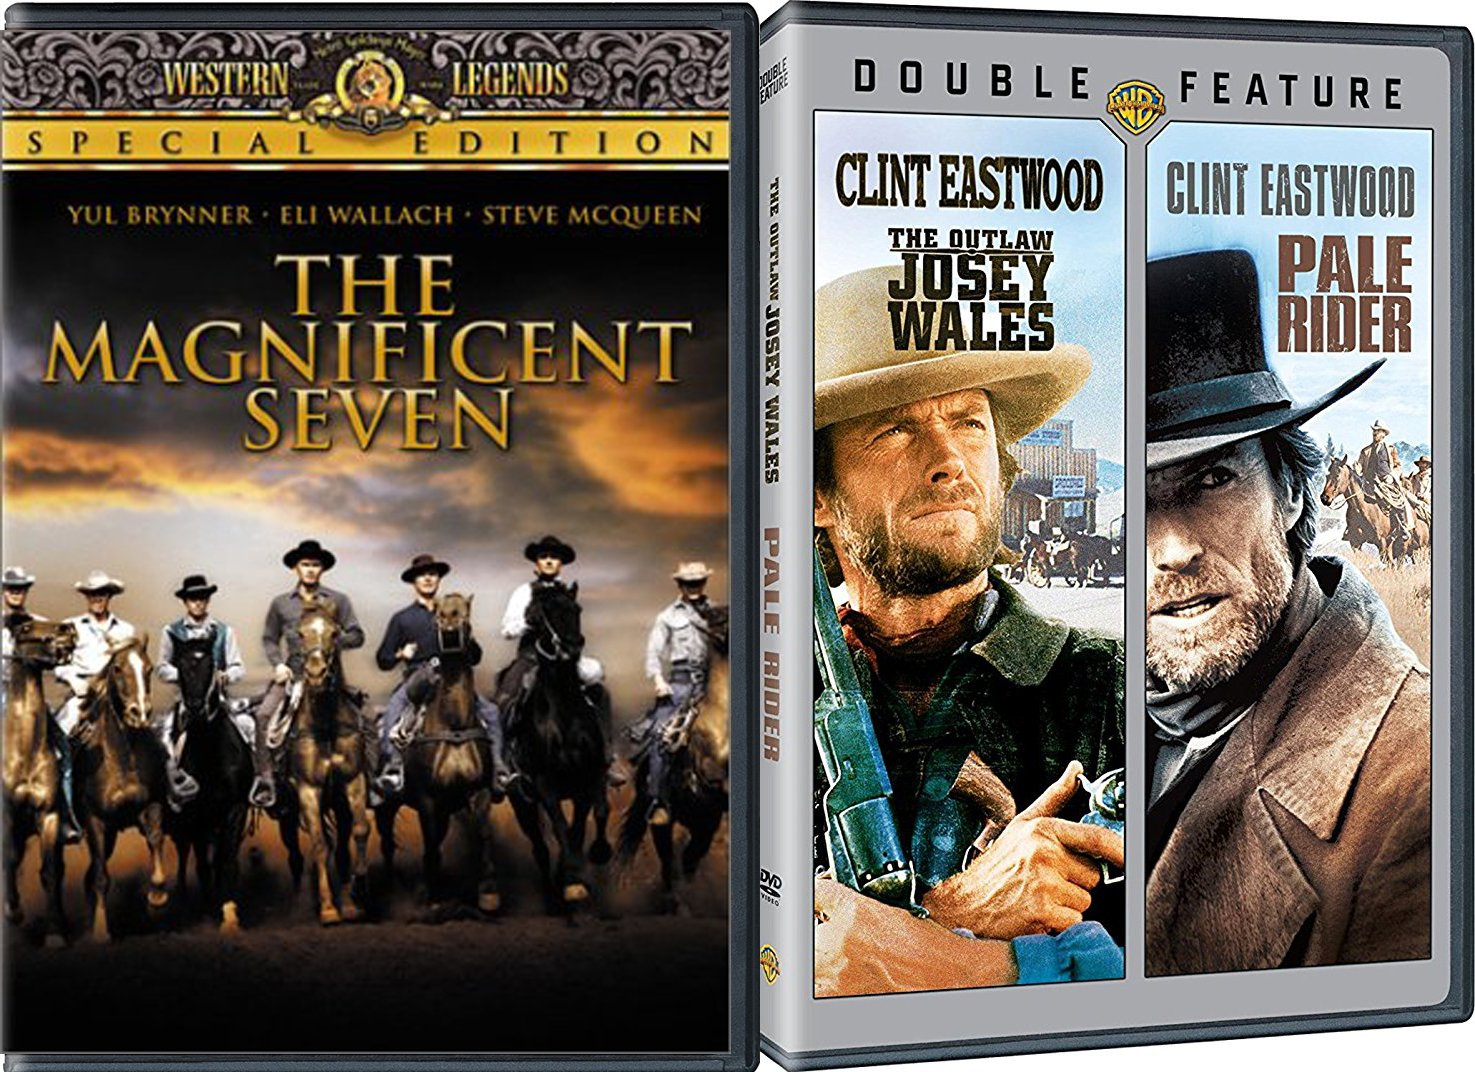 The Magnificent Seven + The Outlaw Josey Wales, Pale Rider Clint ...